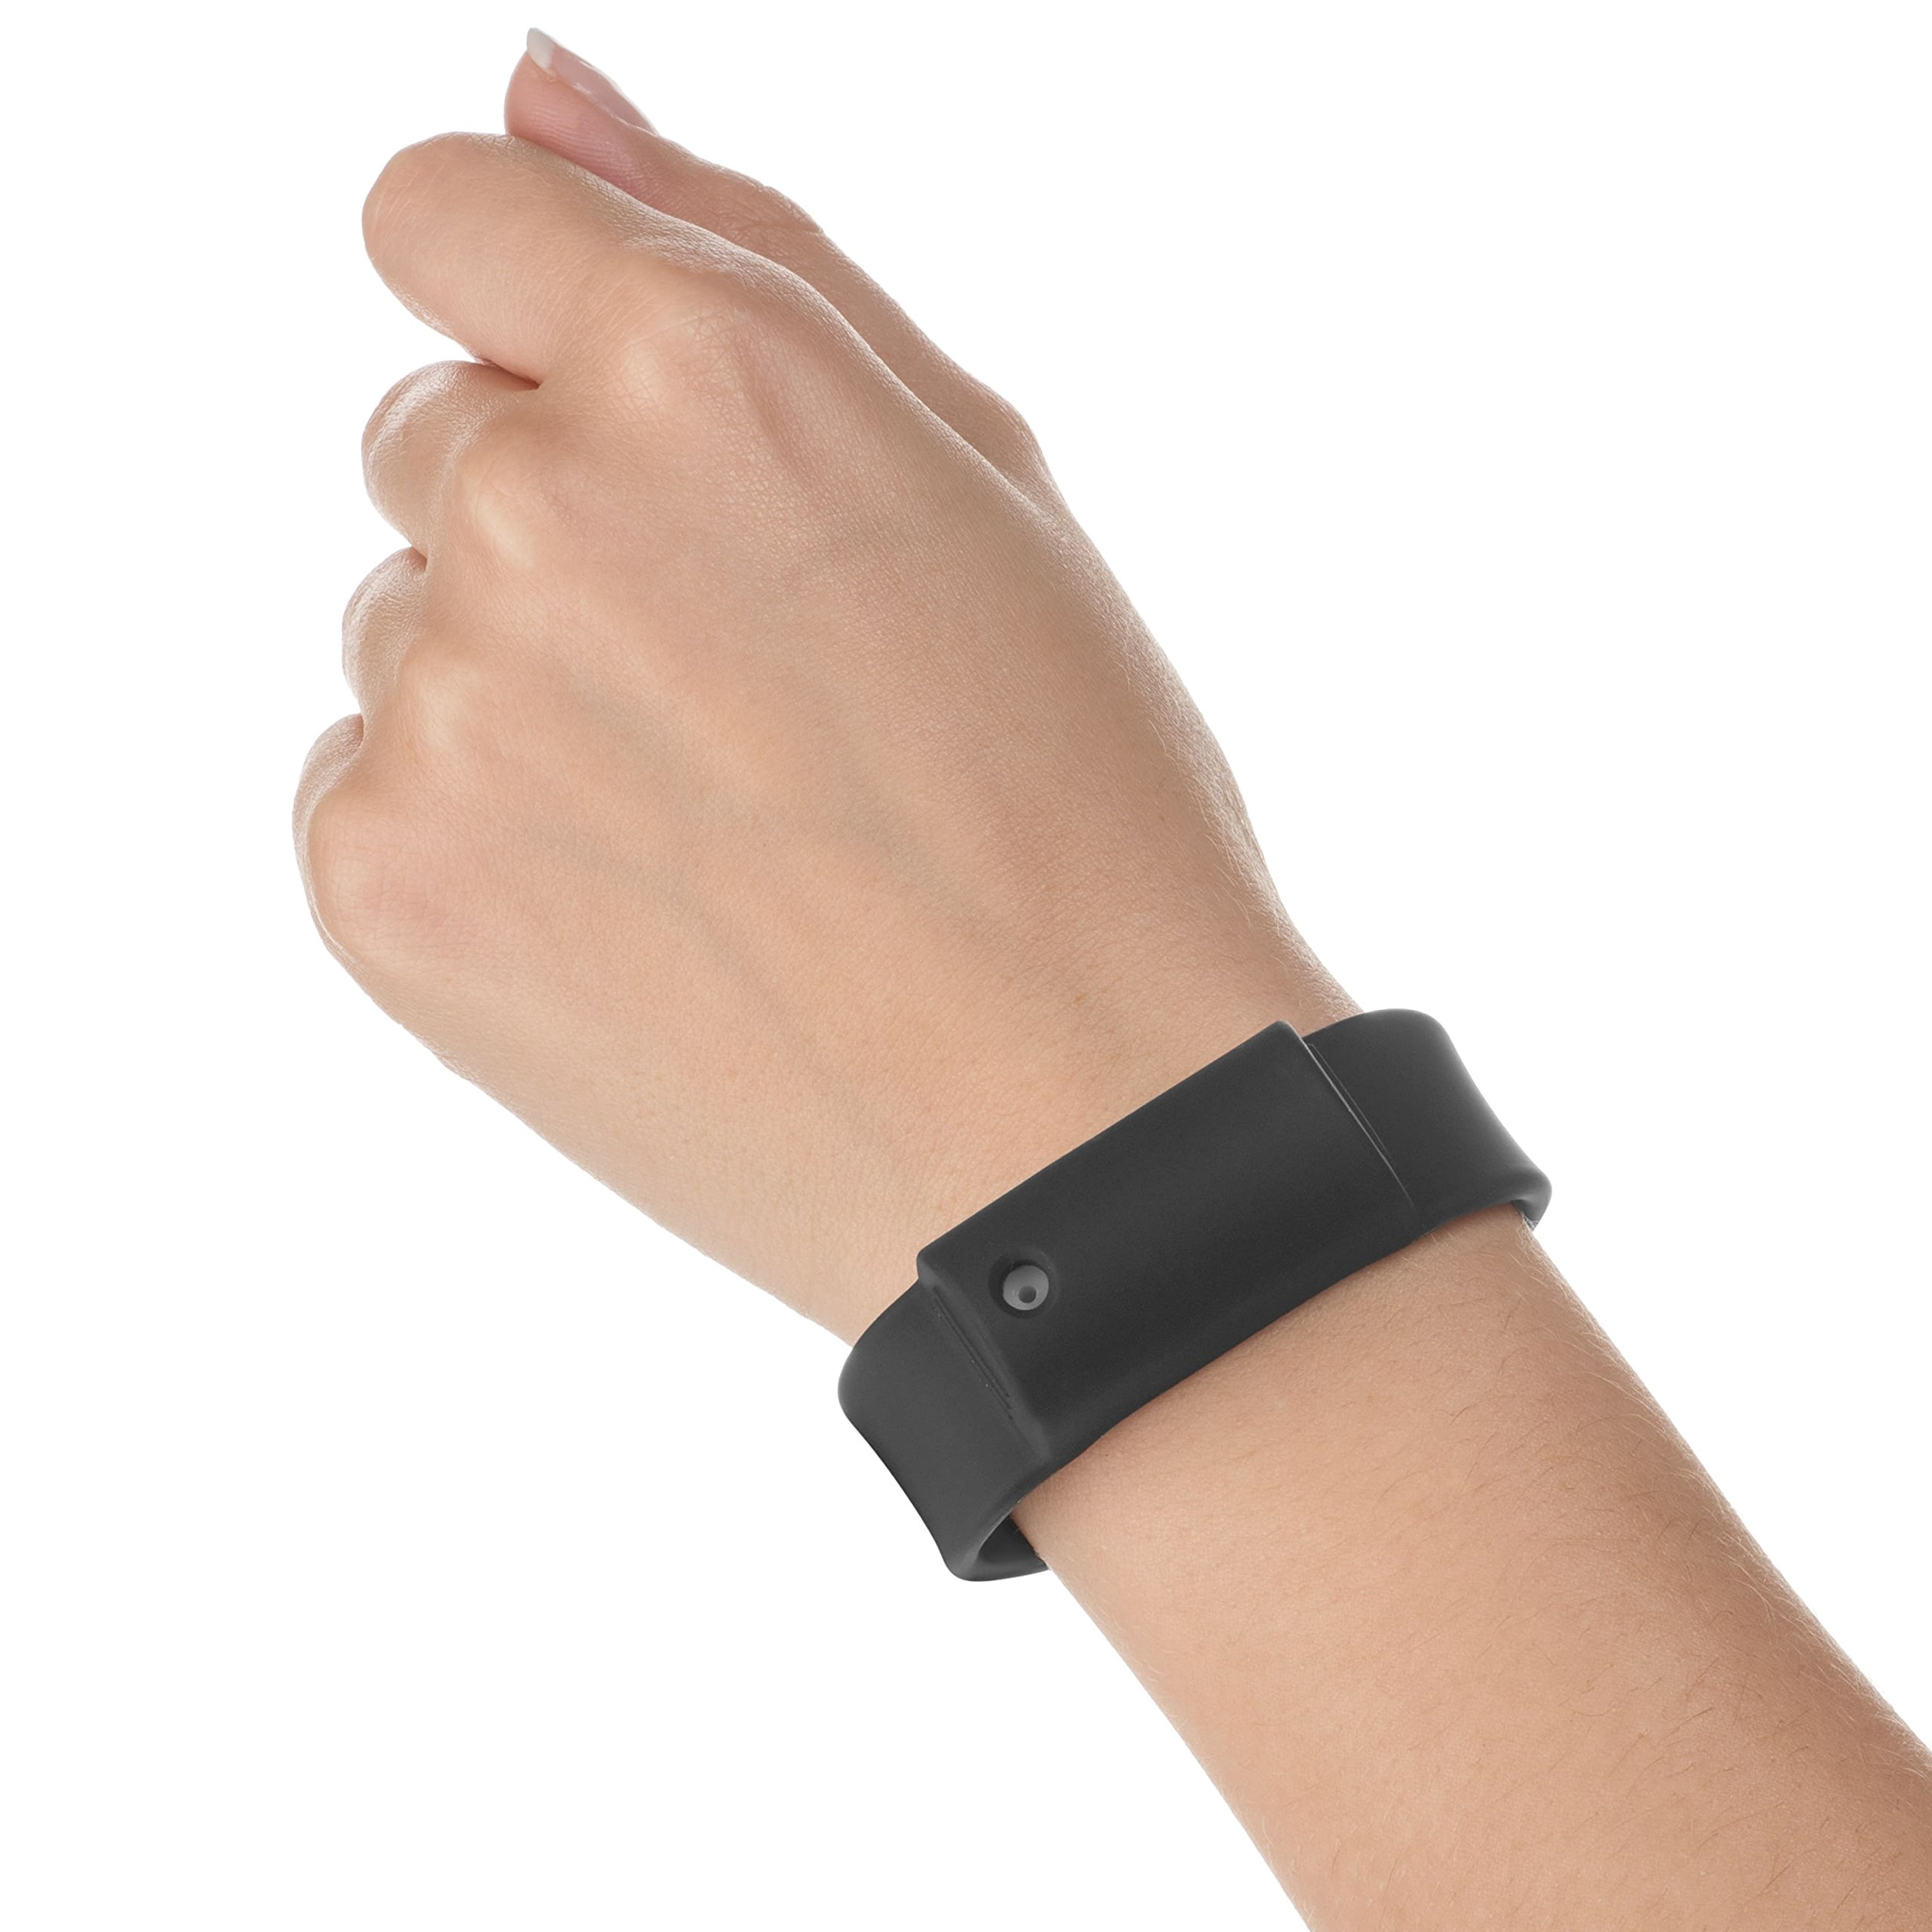 Little Viper Pepper Spray Bracelet, Adjustable Silicone Band- Black, Lightweight, Discreet and Easy Access for Quick Response to Attack, Contains 3-6 Bursts of 10% OC by Little Viper